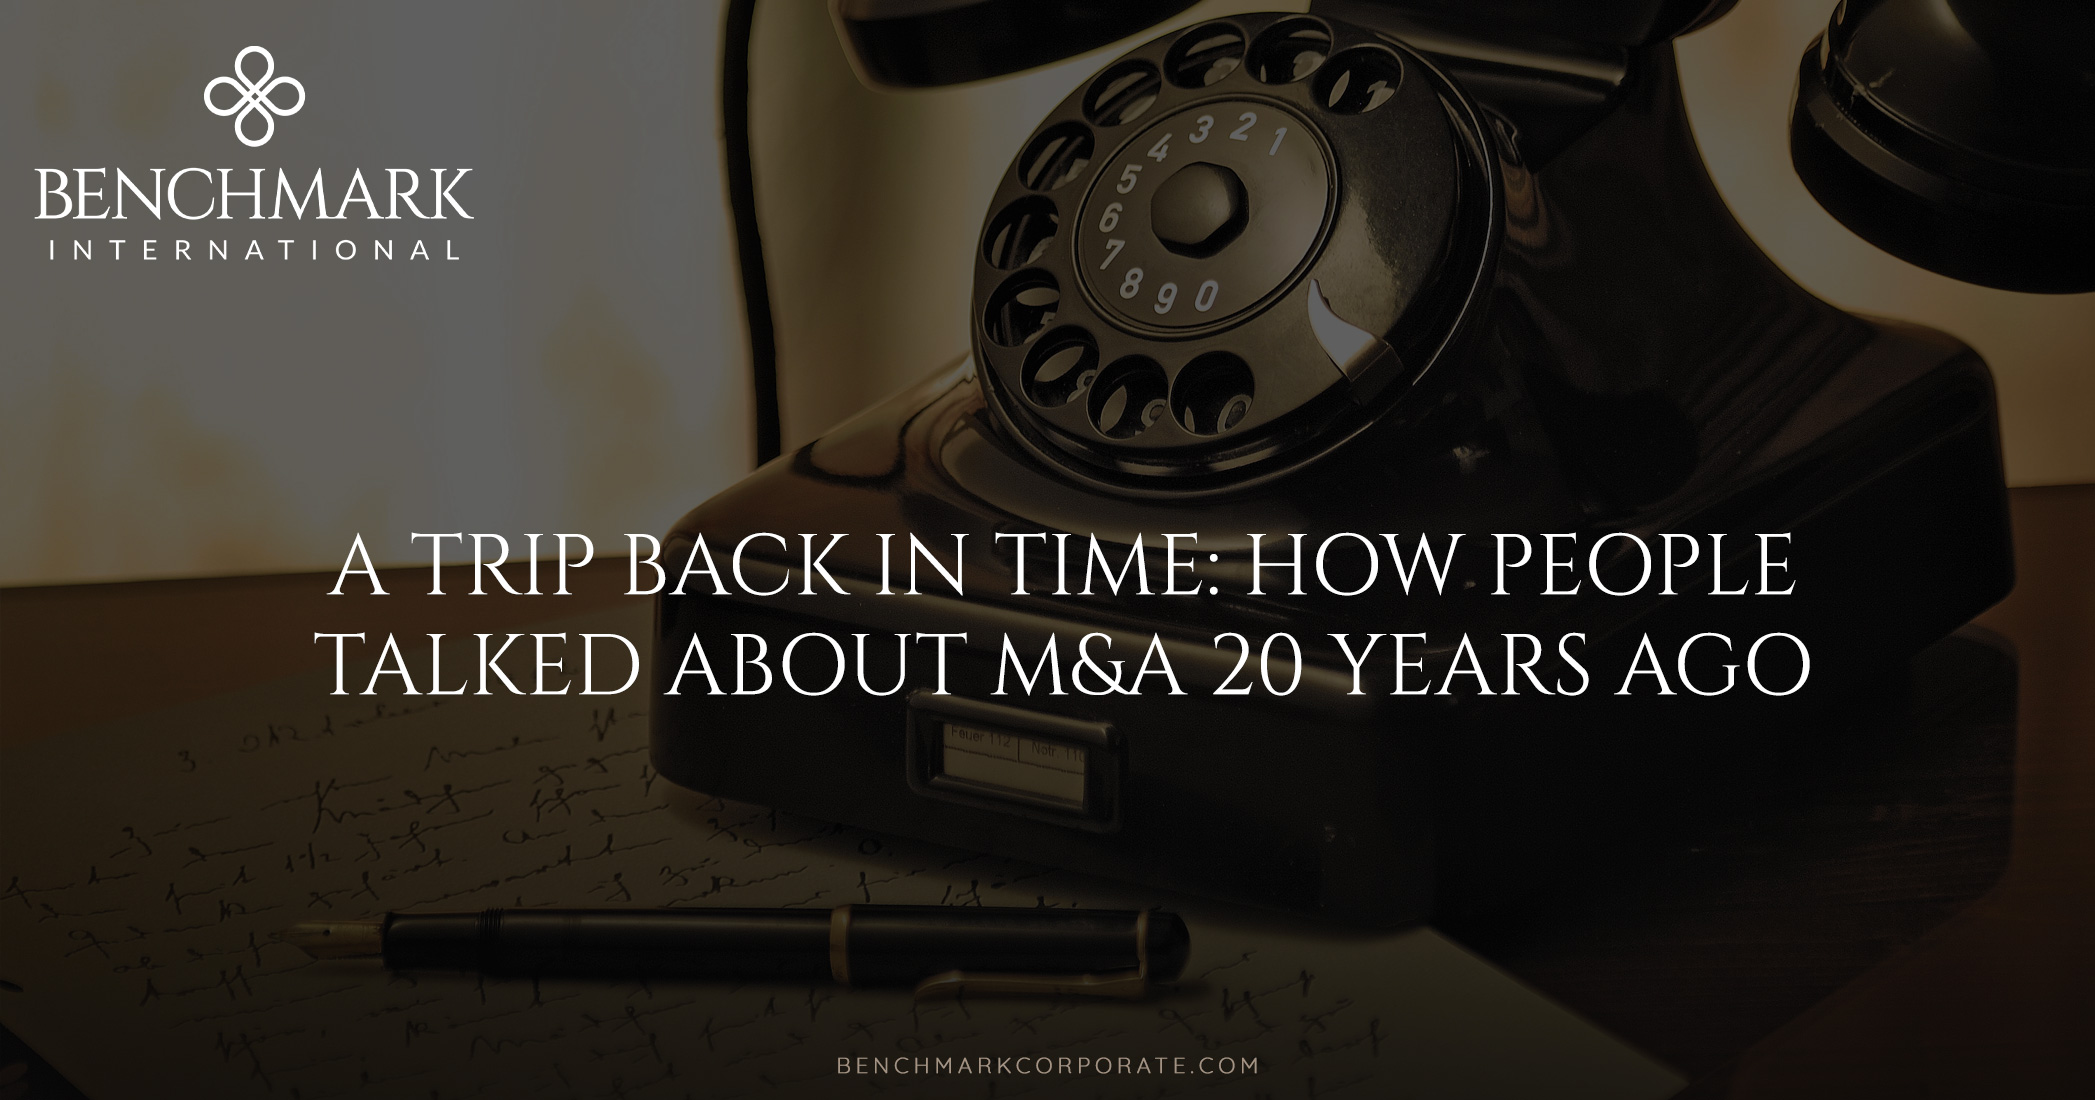 A Trip Back in Time: M&A 20 Years Ago